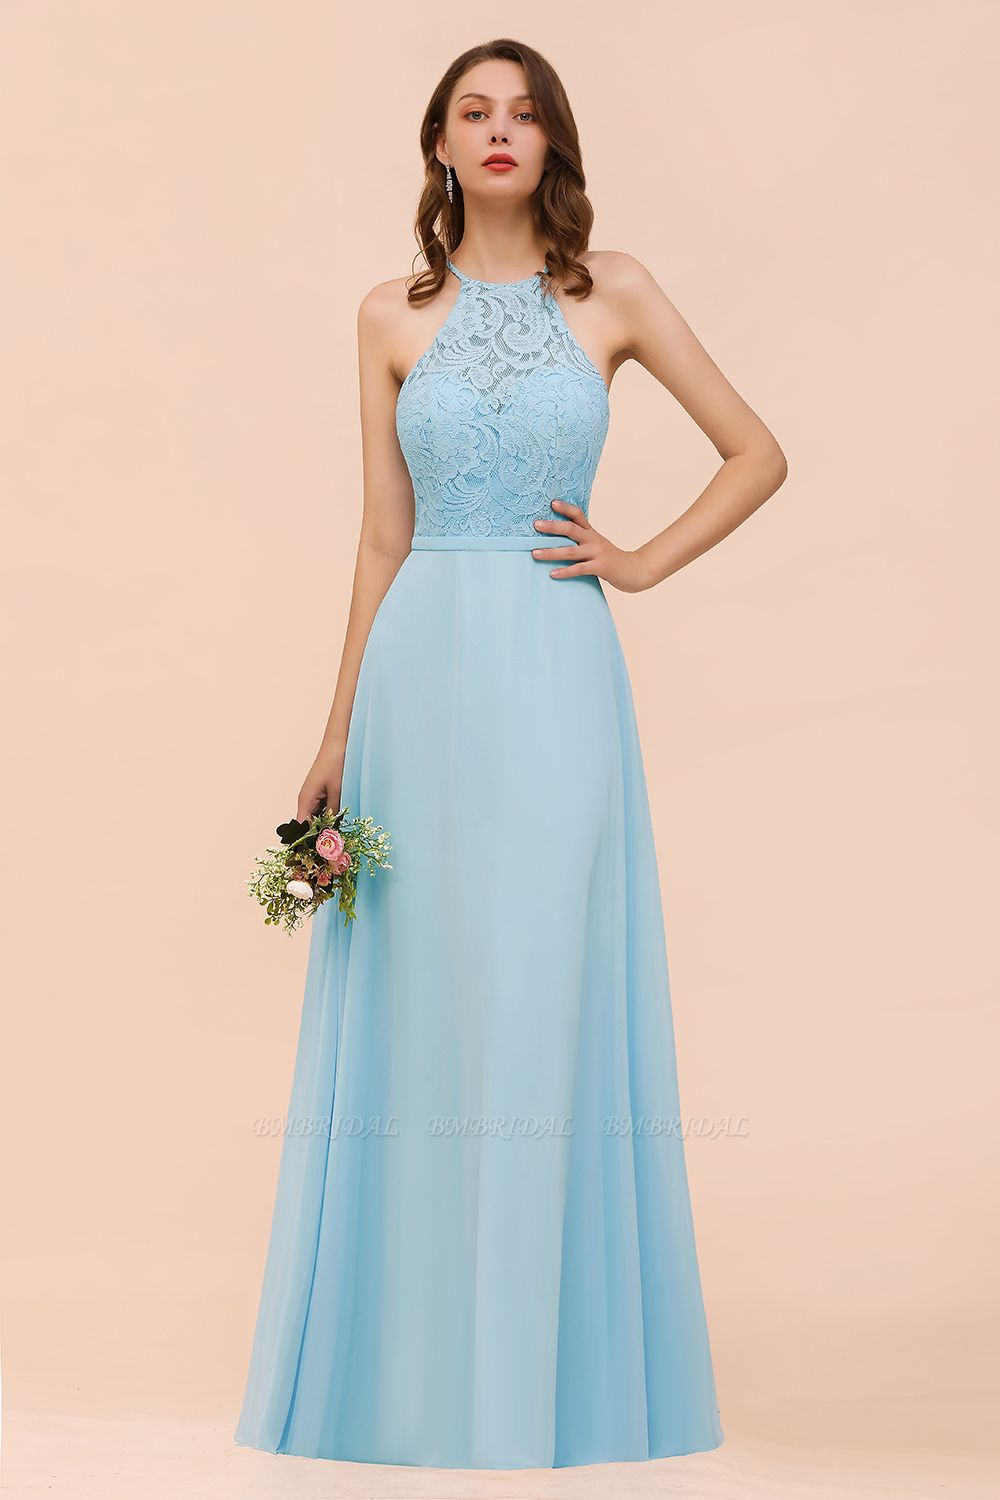 Chic Halter Sleeveless Affordable Sky Blue Bridesmaid Dress with Lace